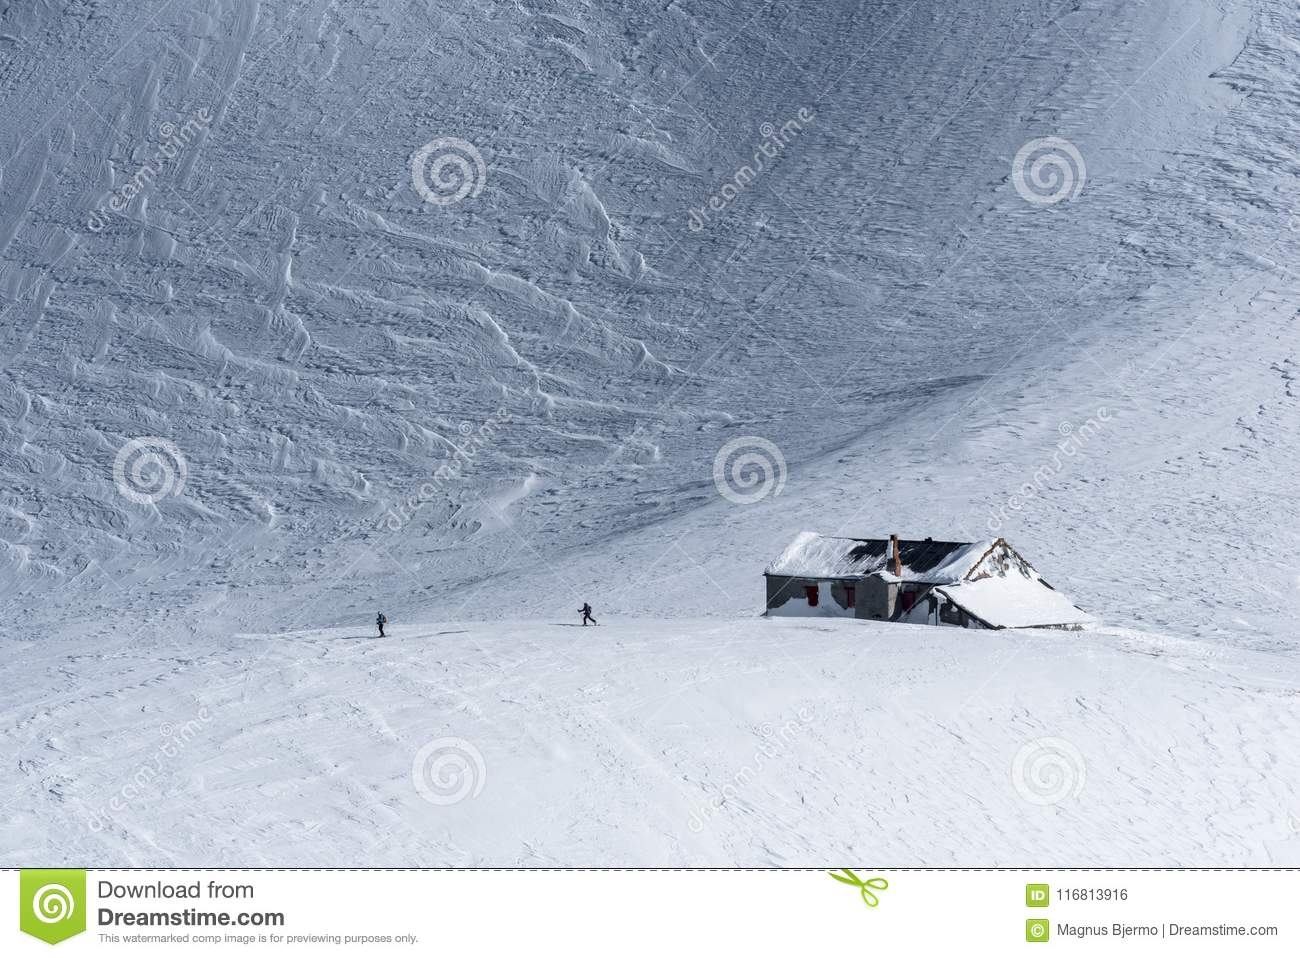 Snow covered alpine mountain hut with two skiers in winter